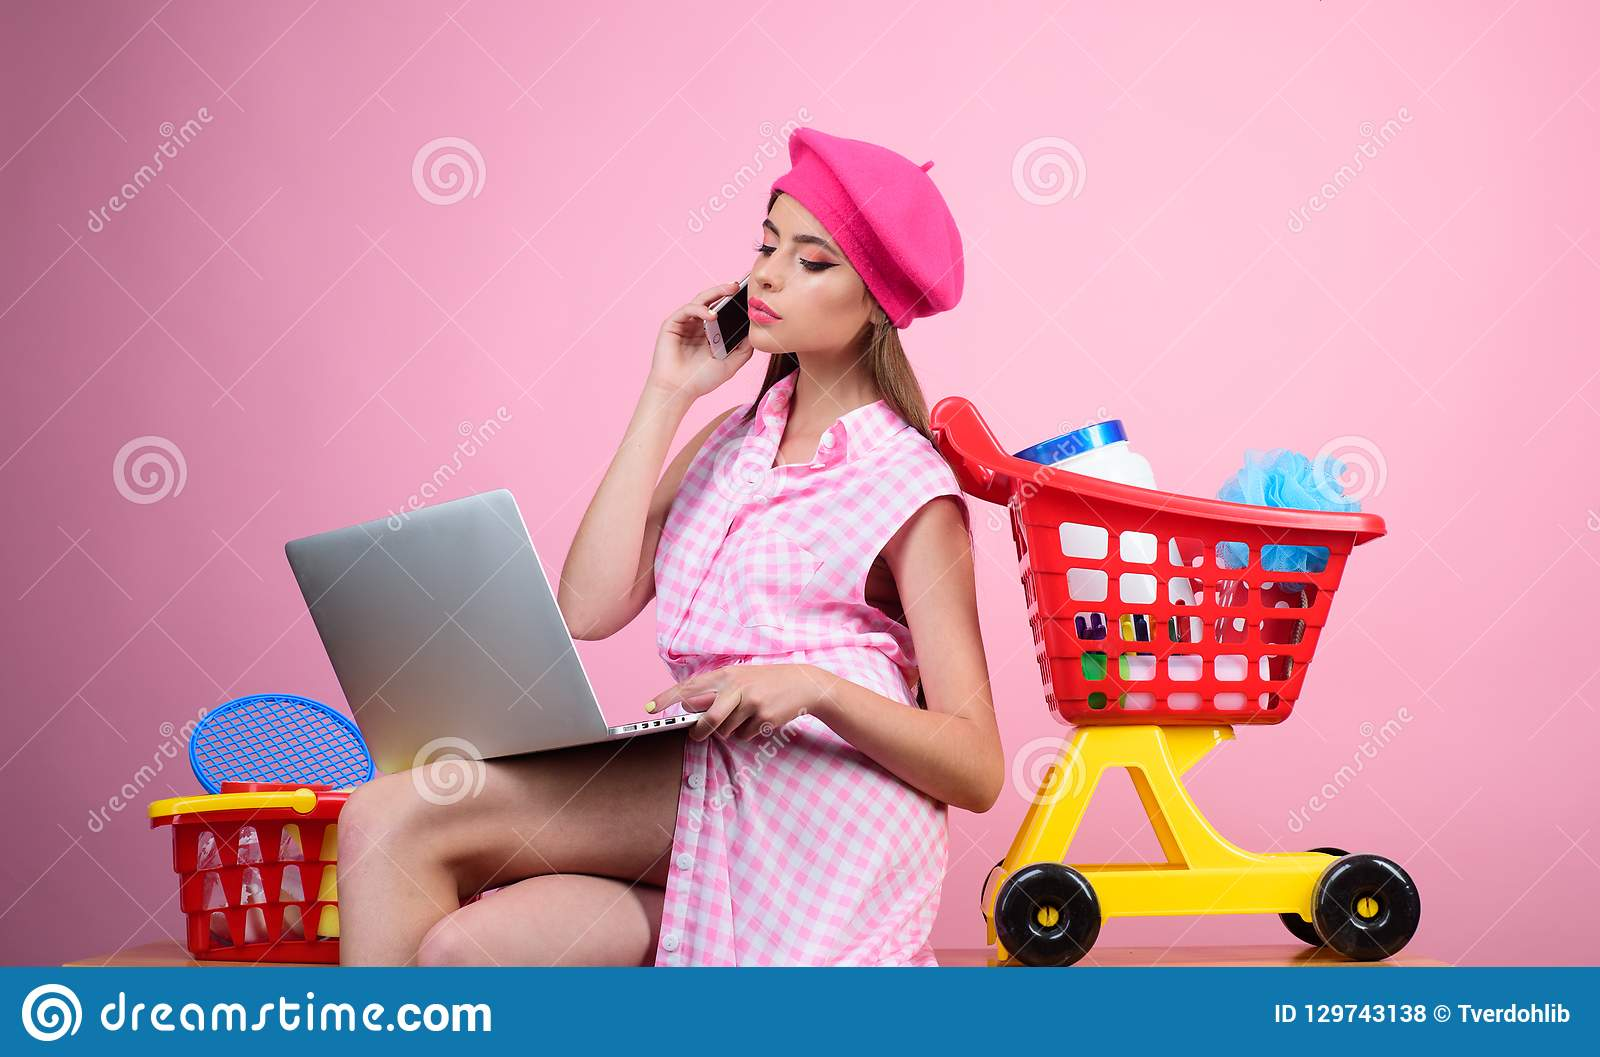 Online shopping app. savings on purchases. retro woman go shopping with full cart. happy girl enjoying online shopping